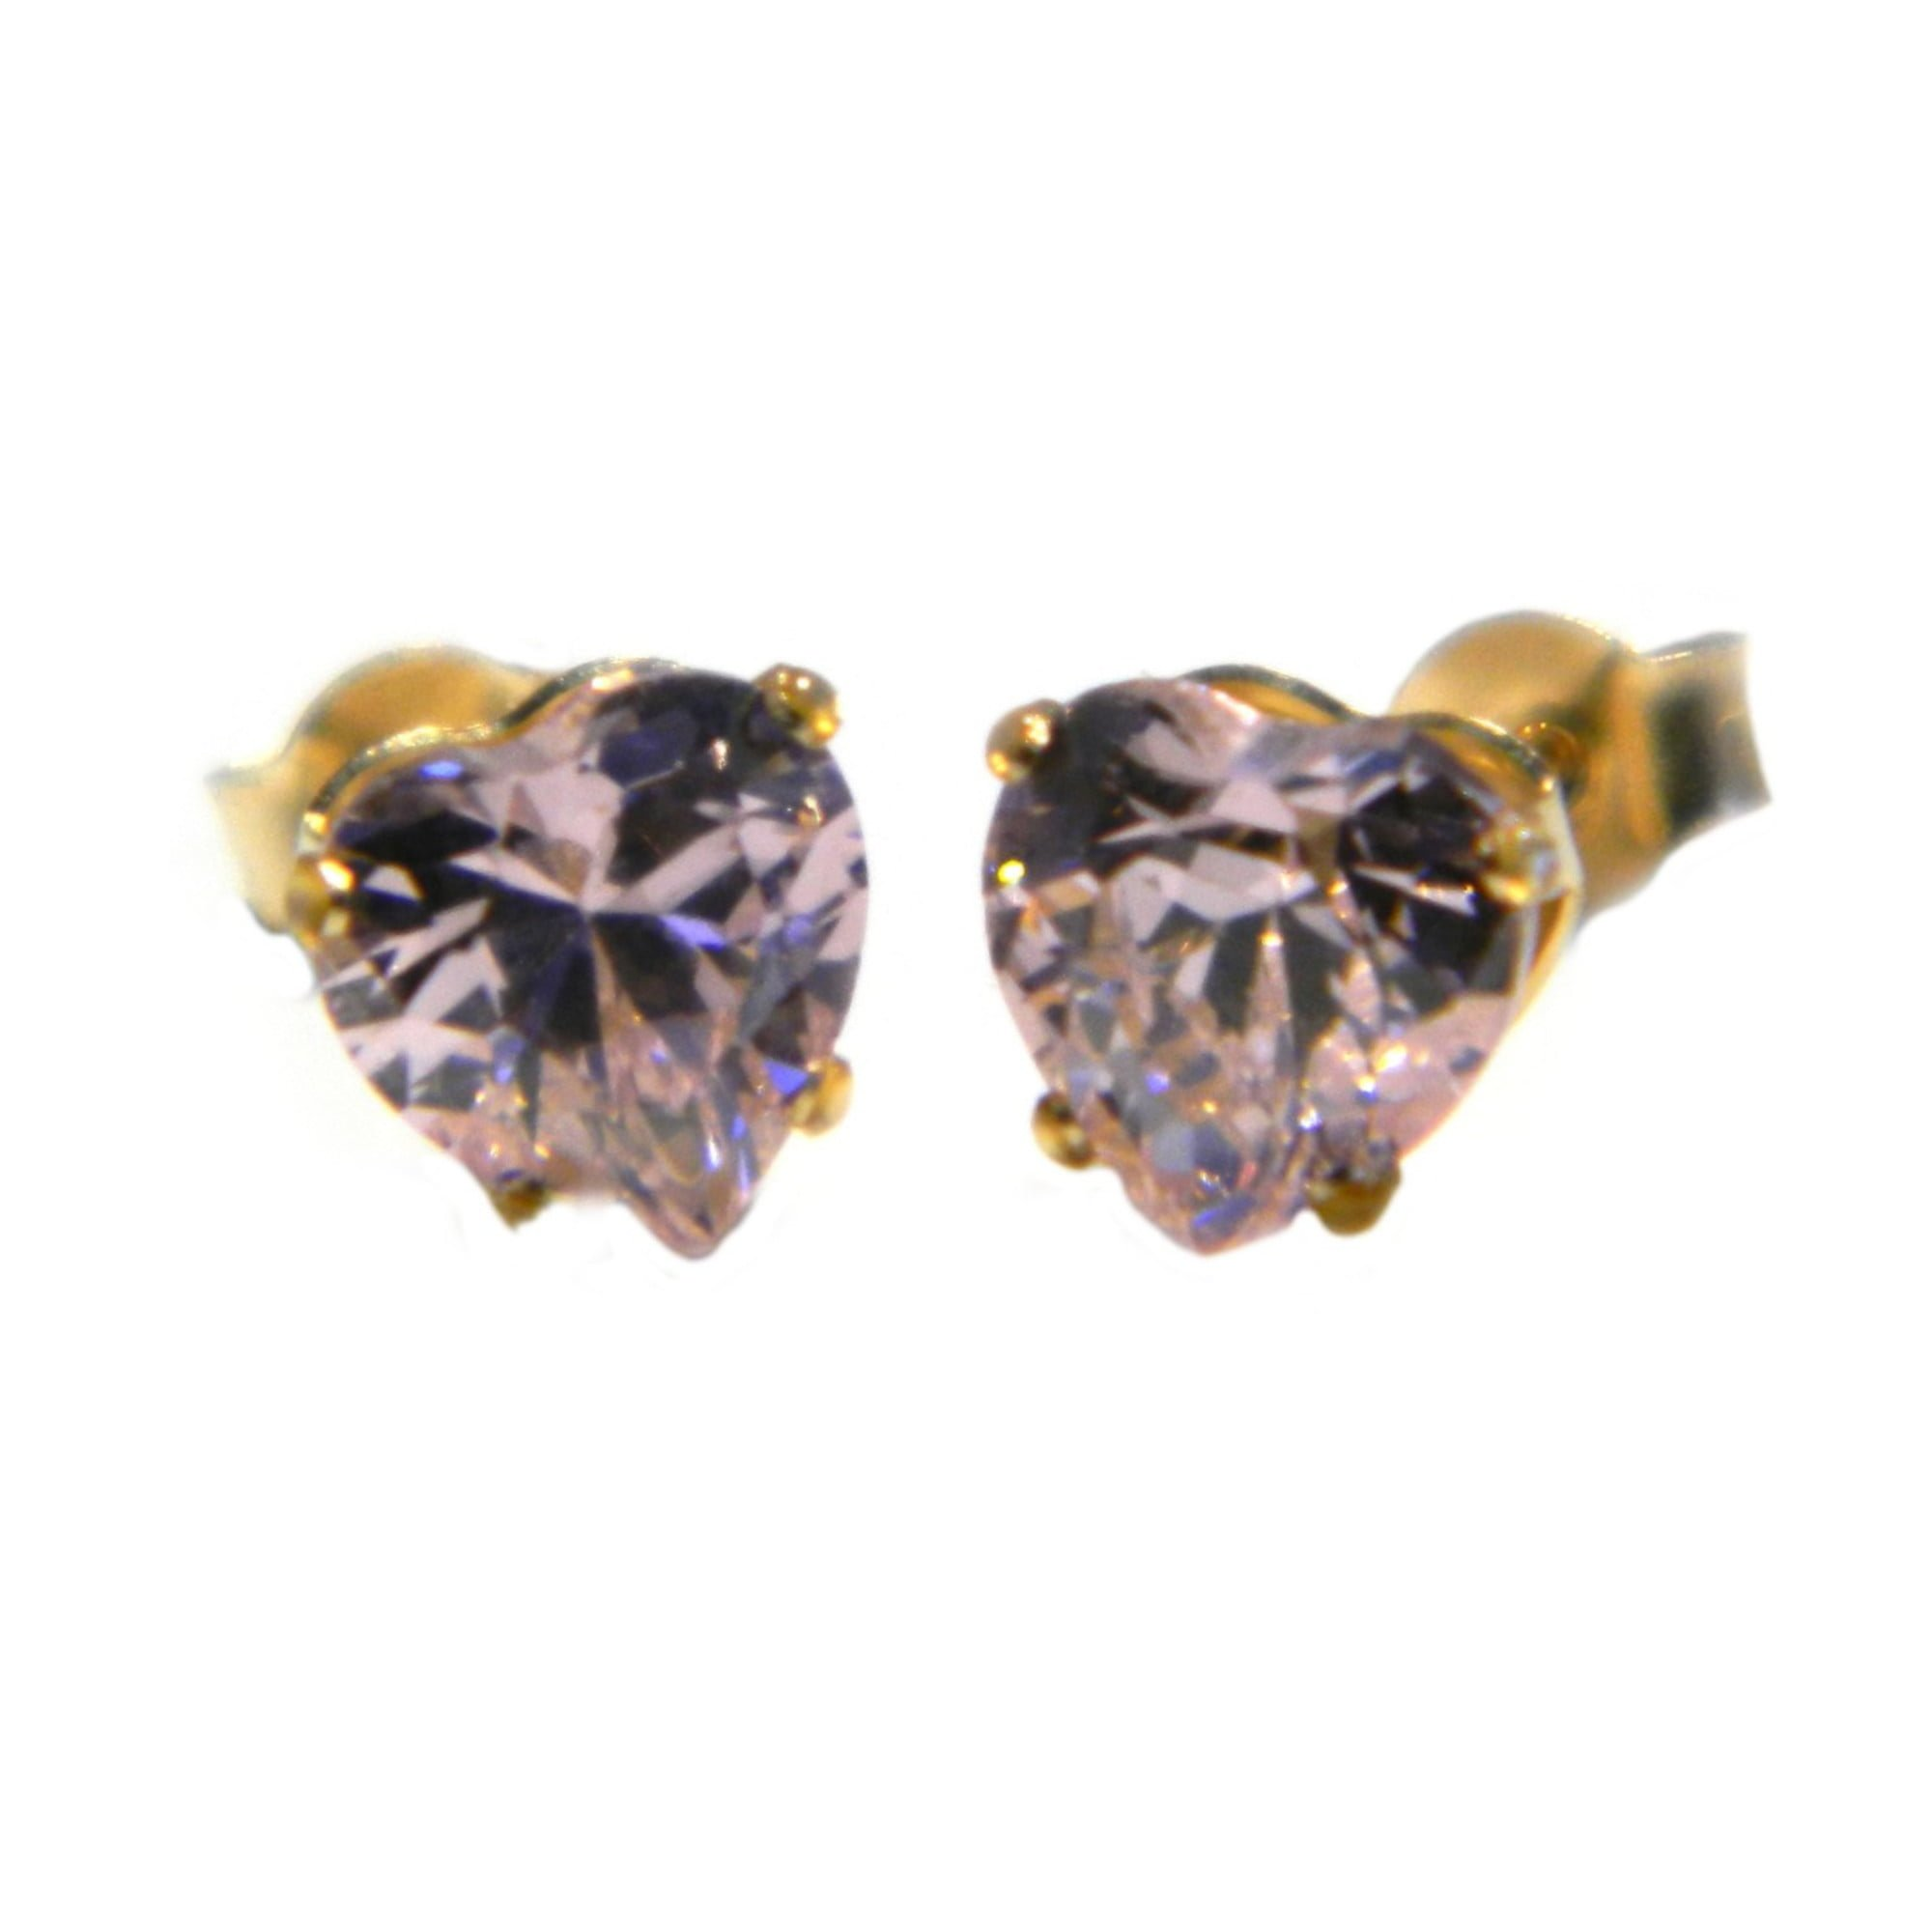 9ct gold pink cz heart stud earrings